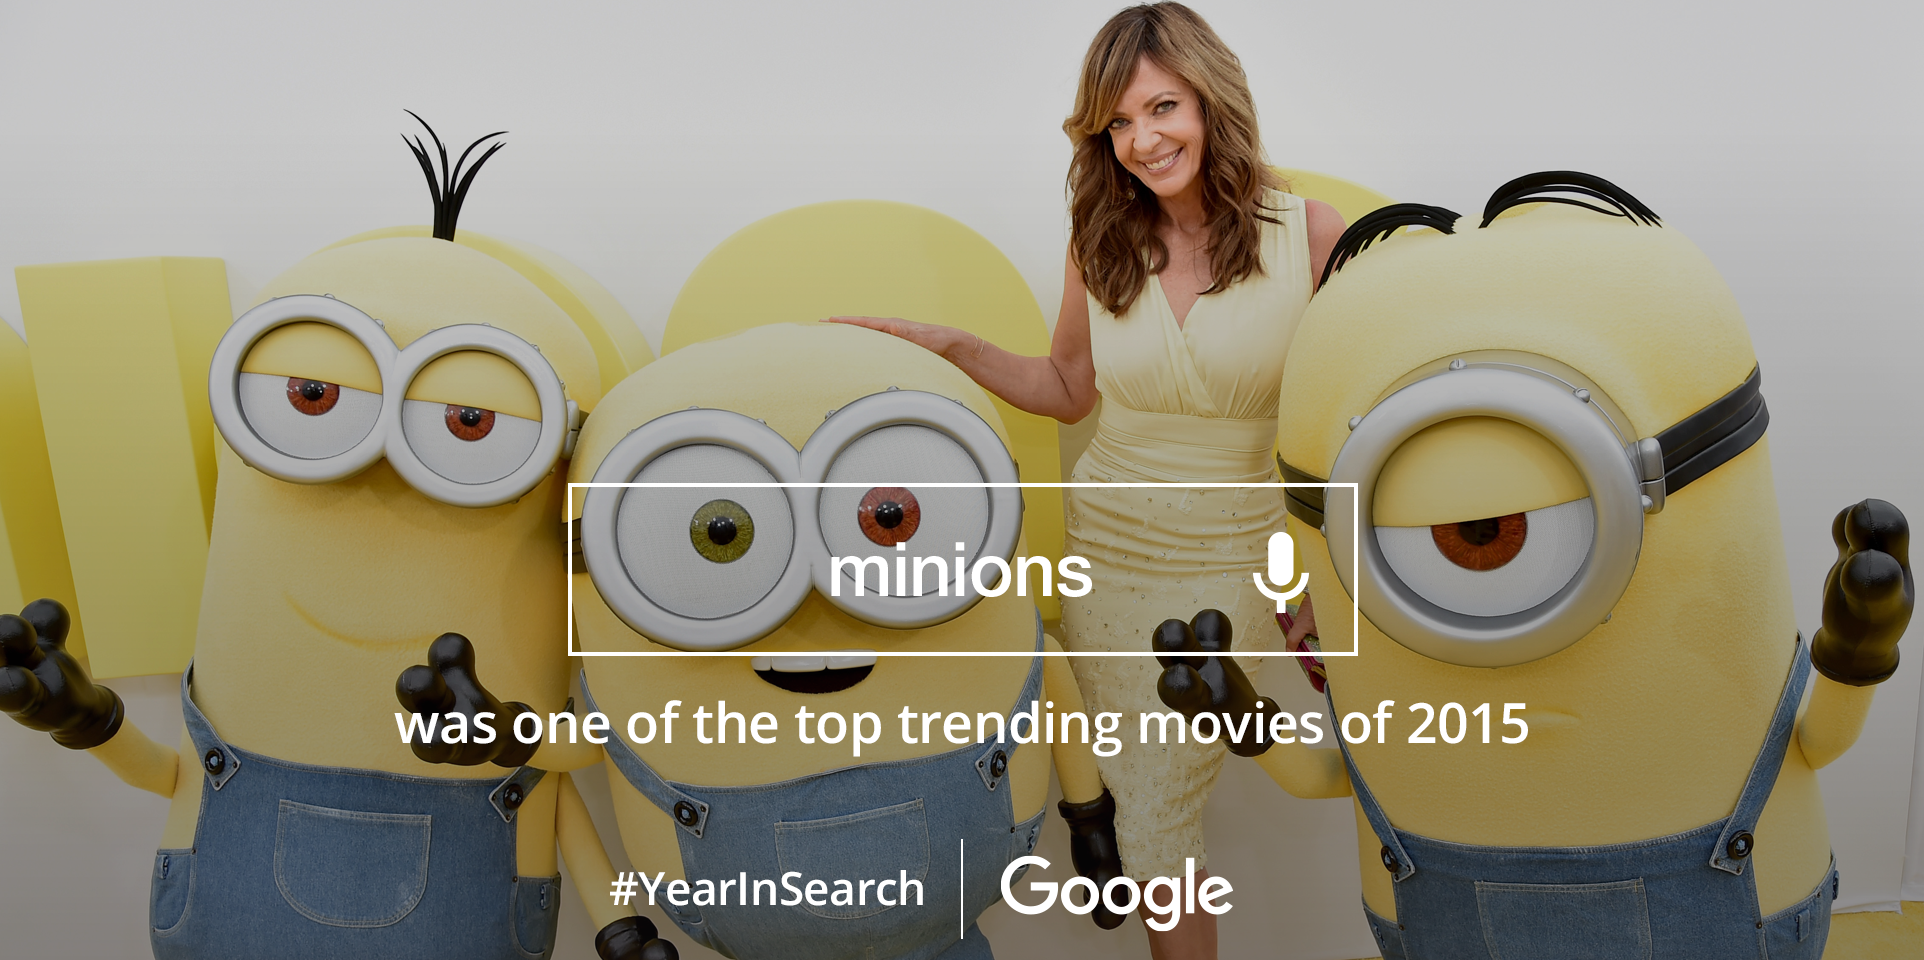 They're cute and lovable but so full of mischief. Gotta love Minions! @Google #YearInSearch https://t.co/mKUM1sXD3G